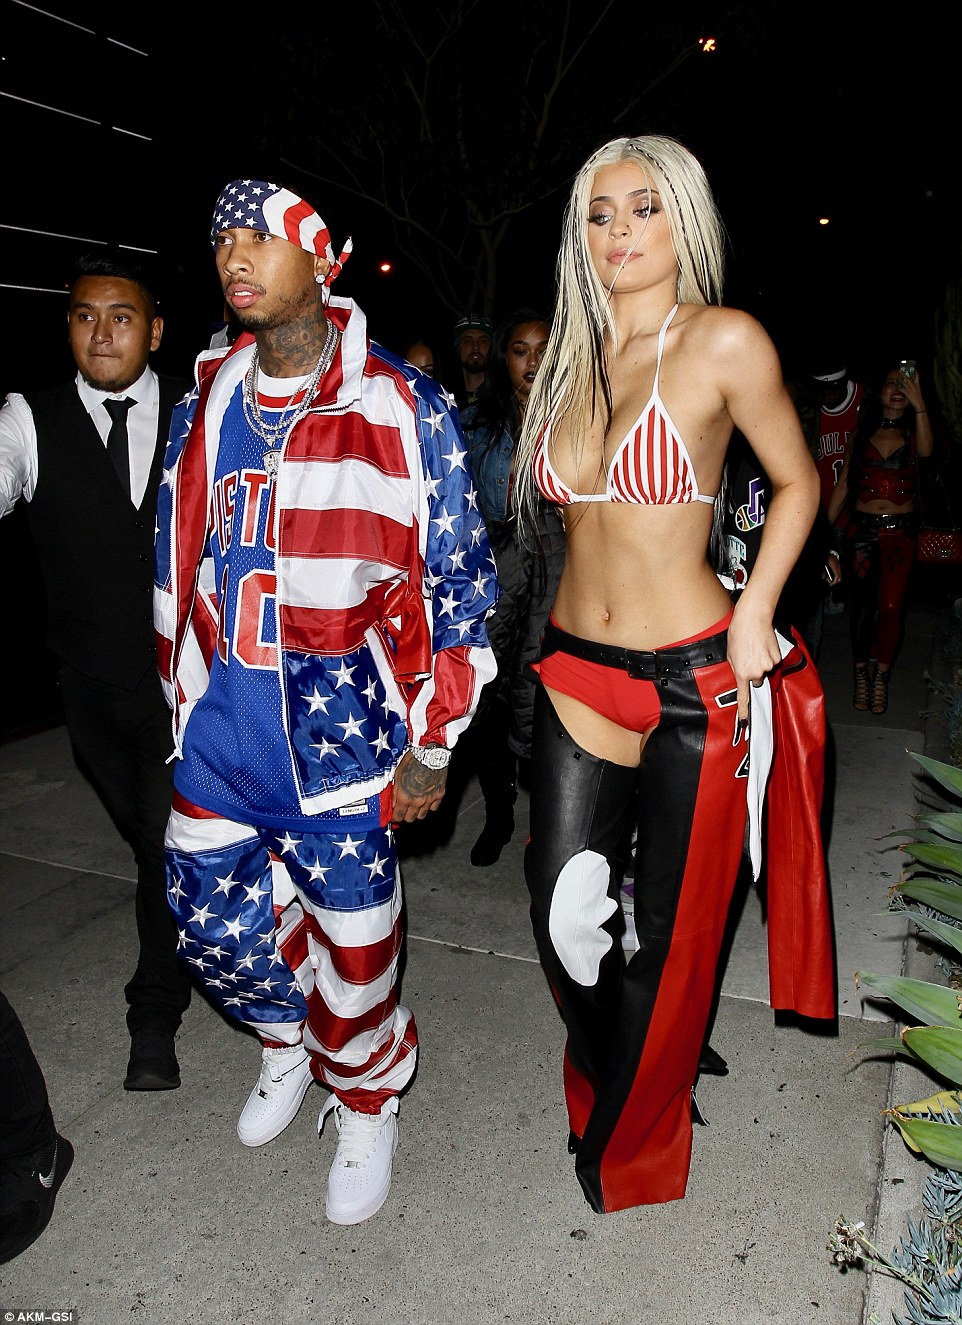 Kylie Jenner and her boyfriend Tyga dressed up in iconic outfits from the early 2000s, attending a Los Angeles party as Christina Aguilera from her Dirrty music video and as the rapper Juelz Santana